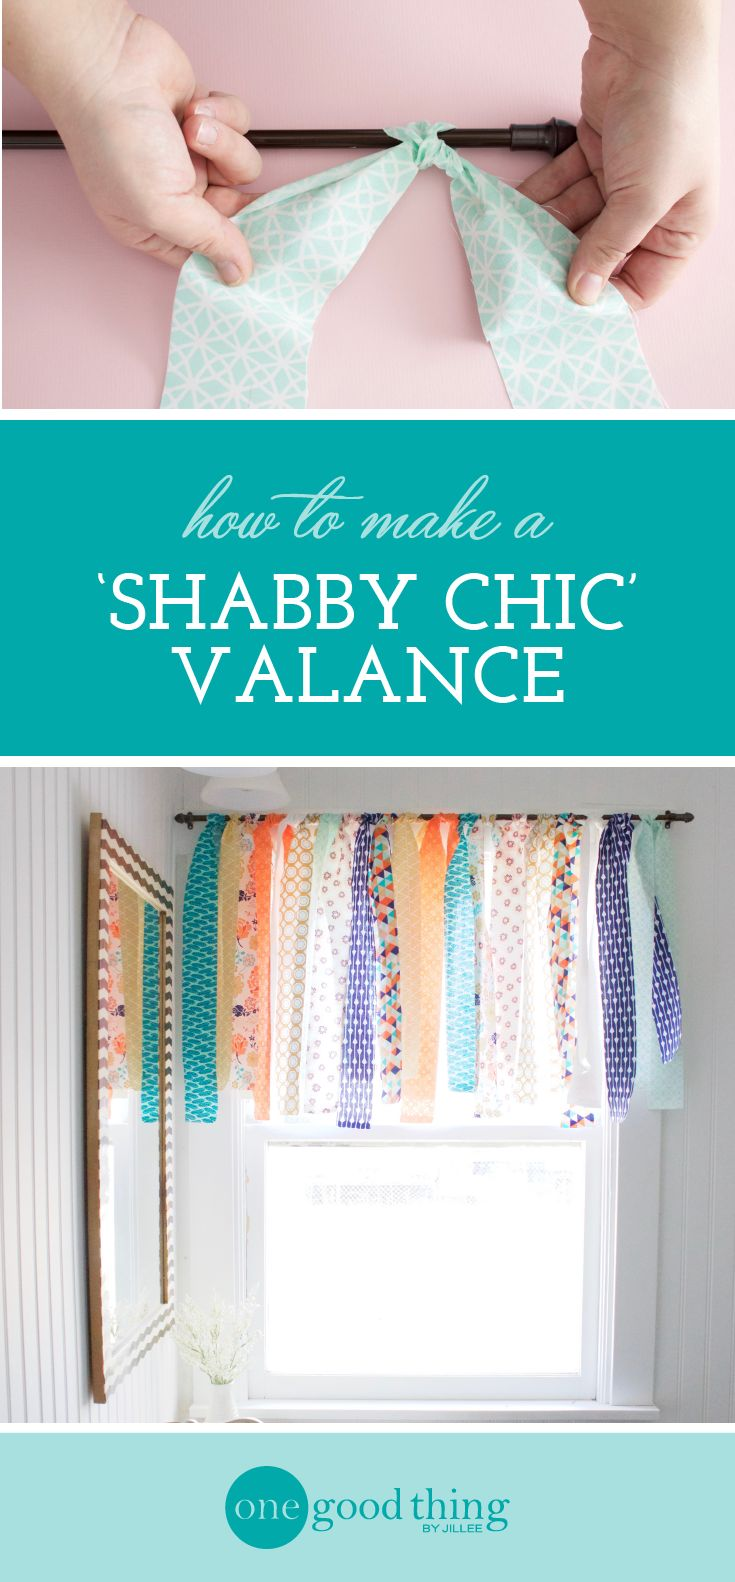 How To Make A Shabby Chic Window Valance In Minutes - One Good Thing by Jillee